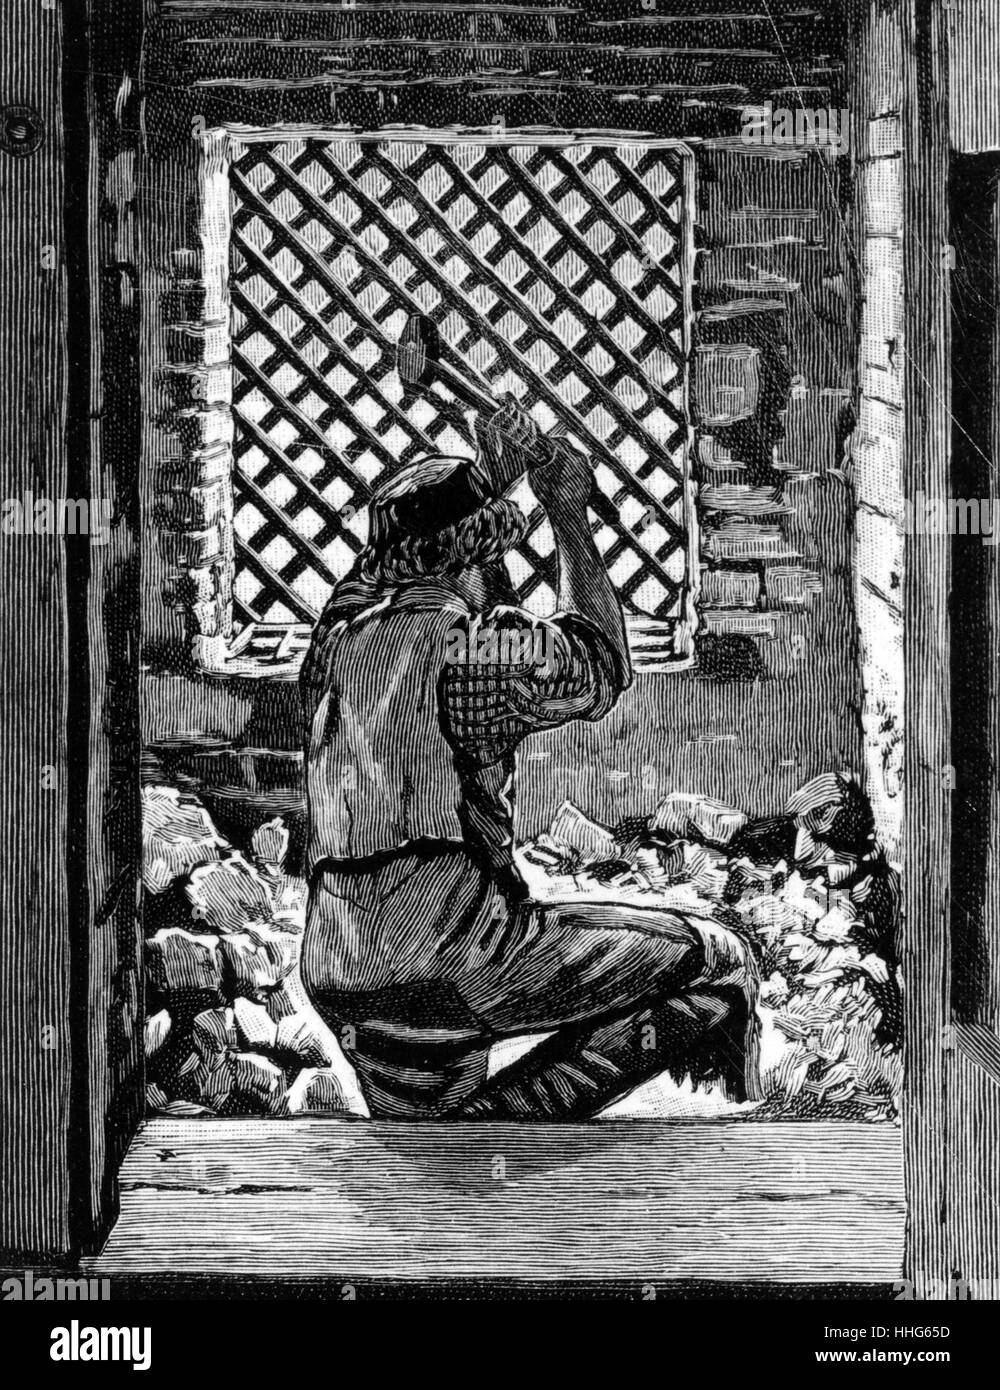 Stone breaking in the casual ward of a typical London workhouse. 1895. - Stock Image